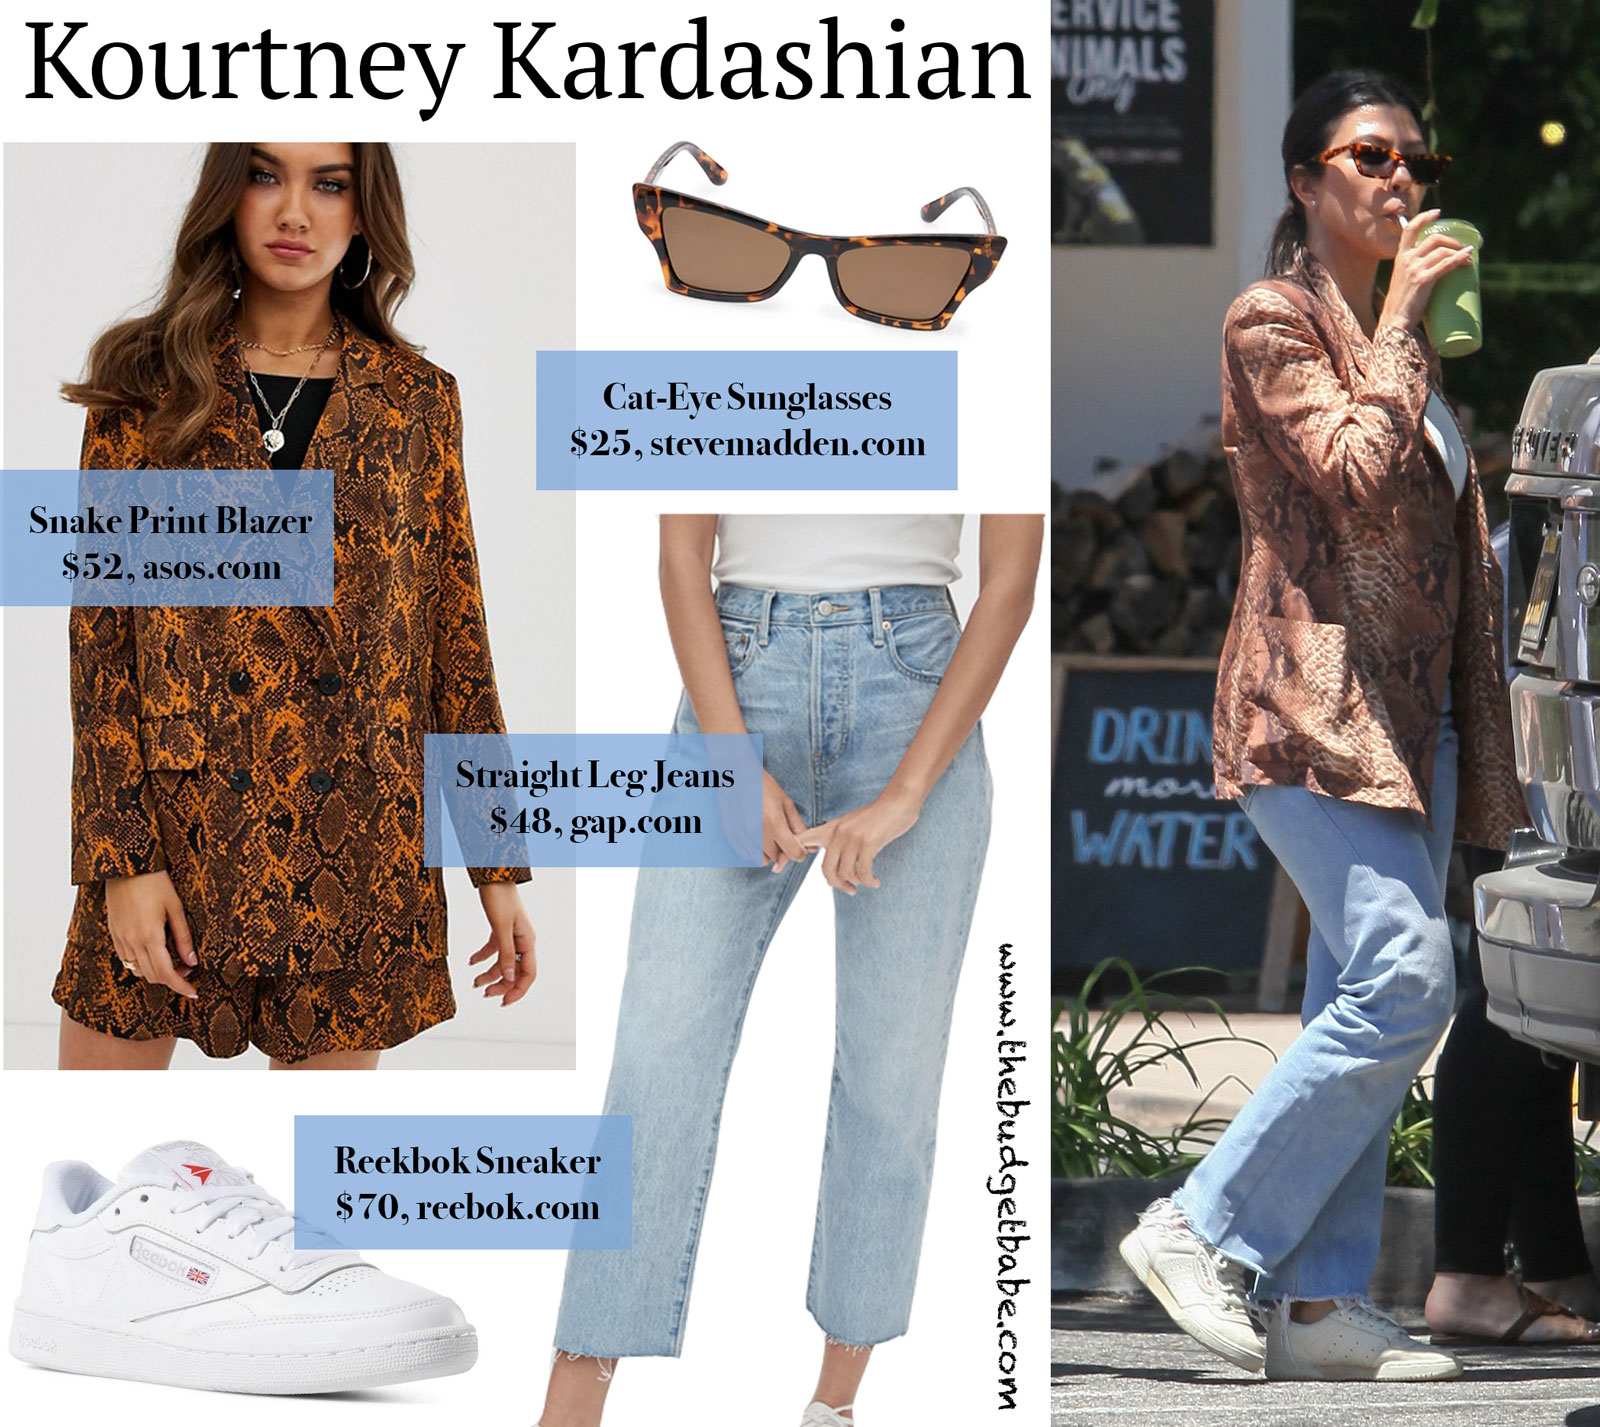 Kourtney Kardashian Snake Skin Blazer Look for Less